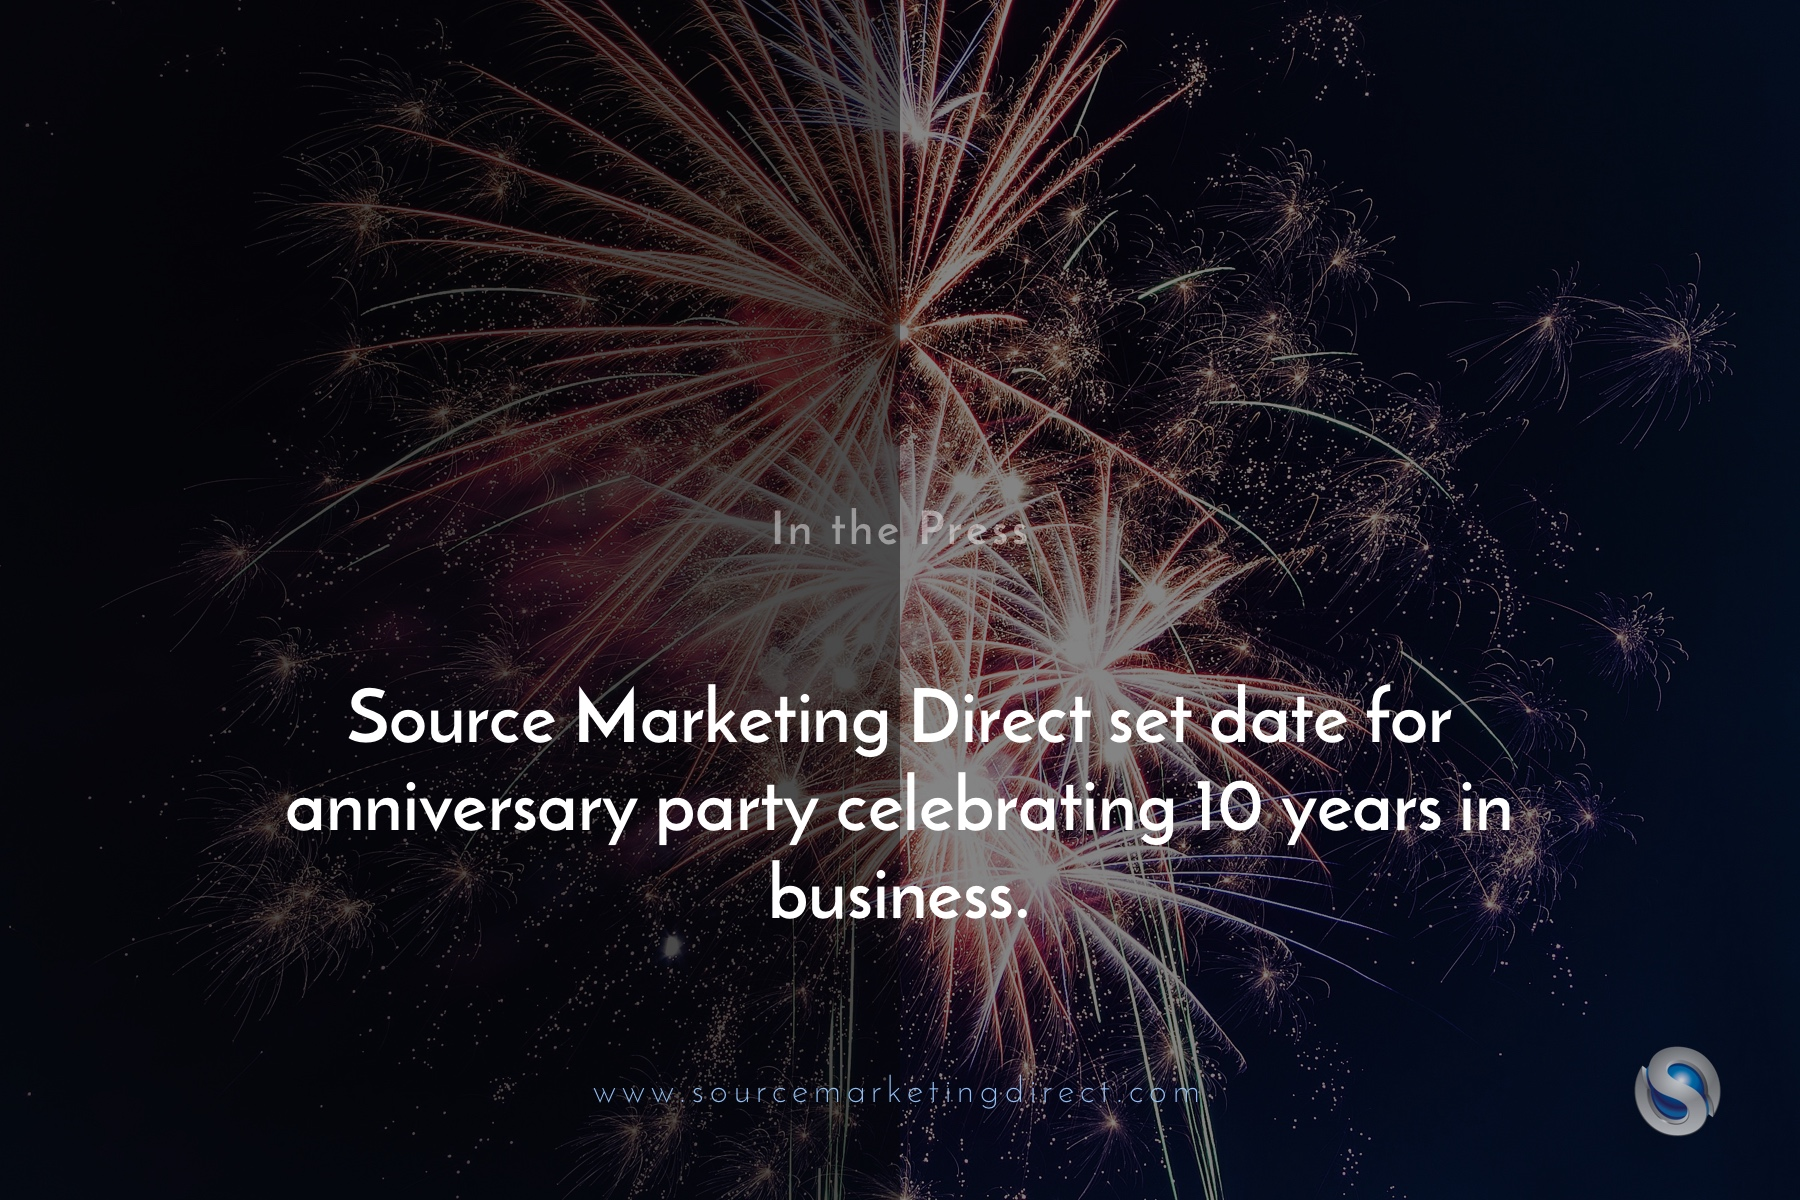 Source Marketing Direct set date for anniversary party celebrating 10 years in business.